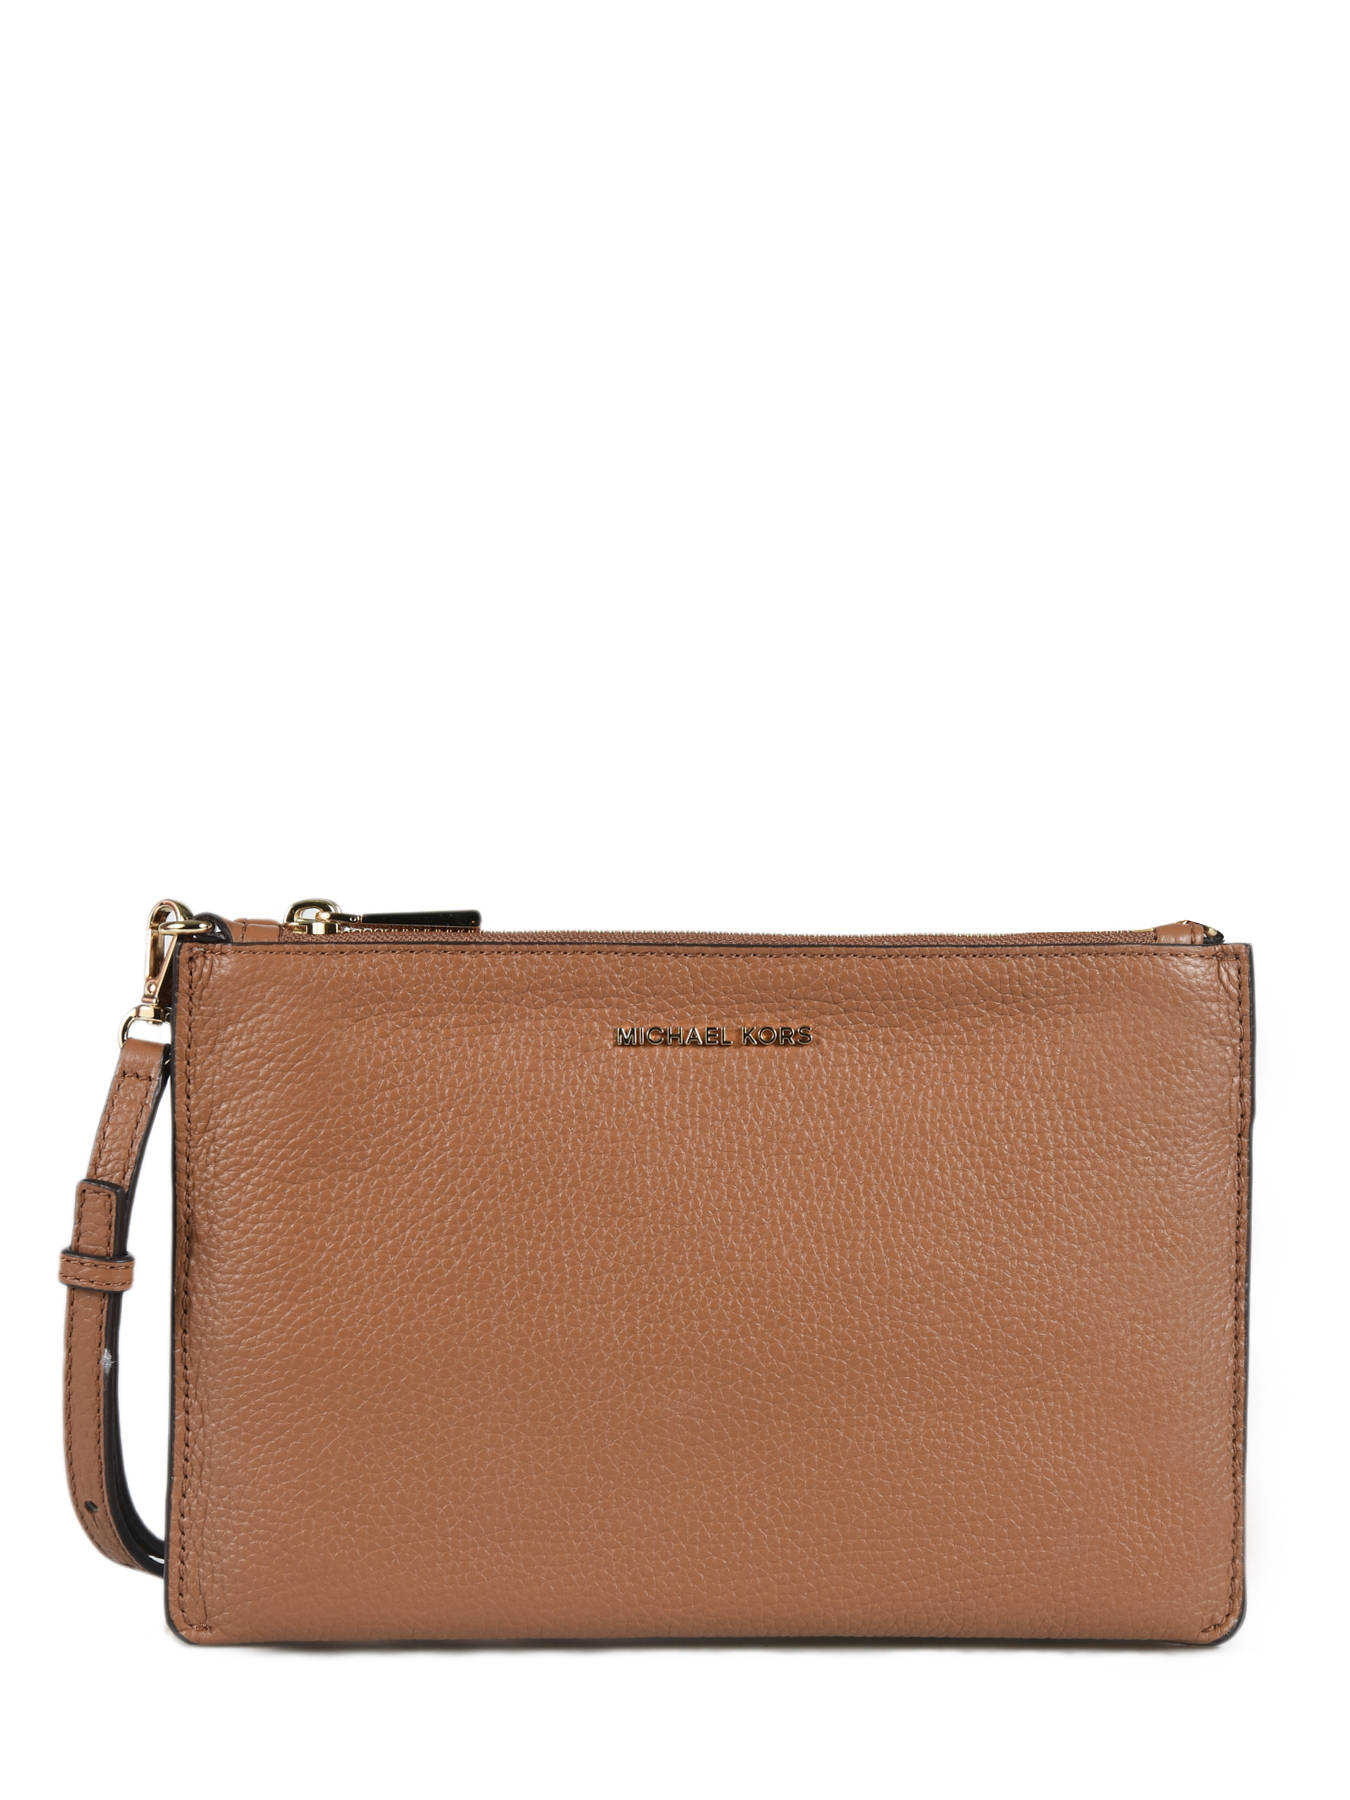 50% off good looking shop for Leather double-pouch crossbody bag MICHAEL KORS